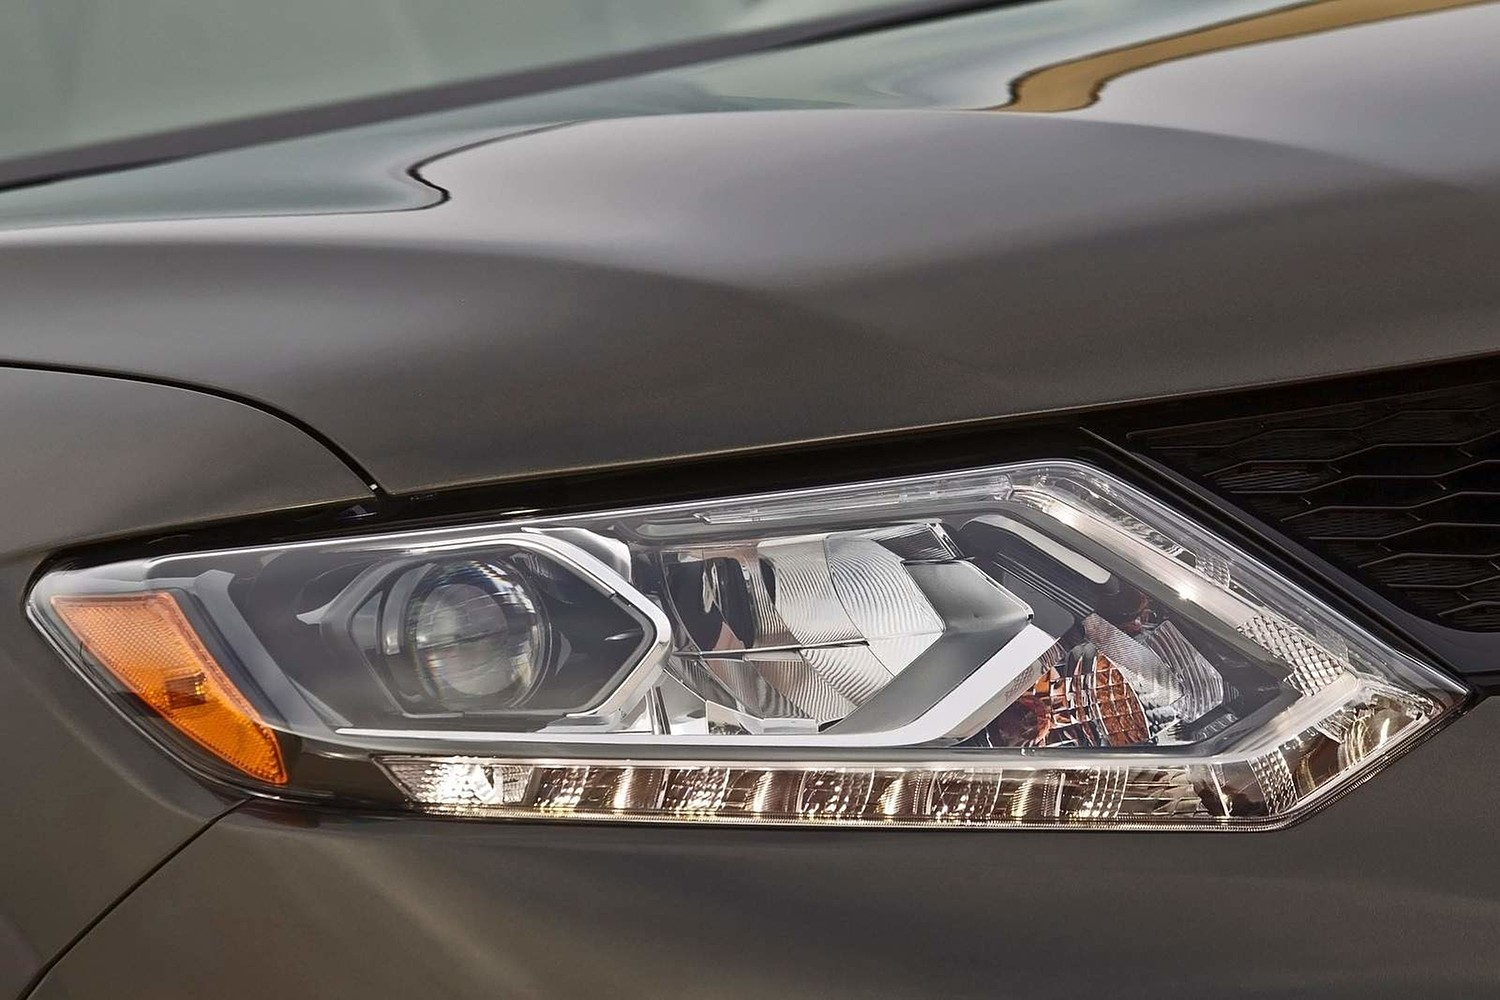 Nissan Rogue SL 4dr SUV Headlamp Detail (2014 model year shown)